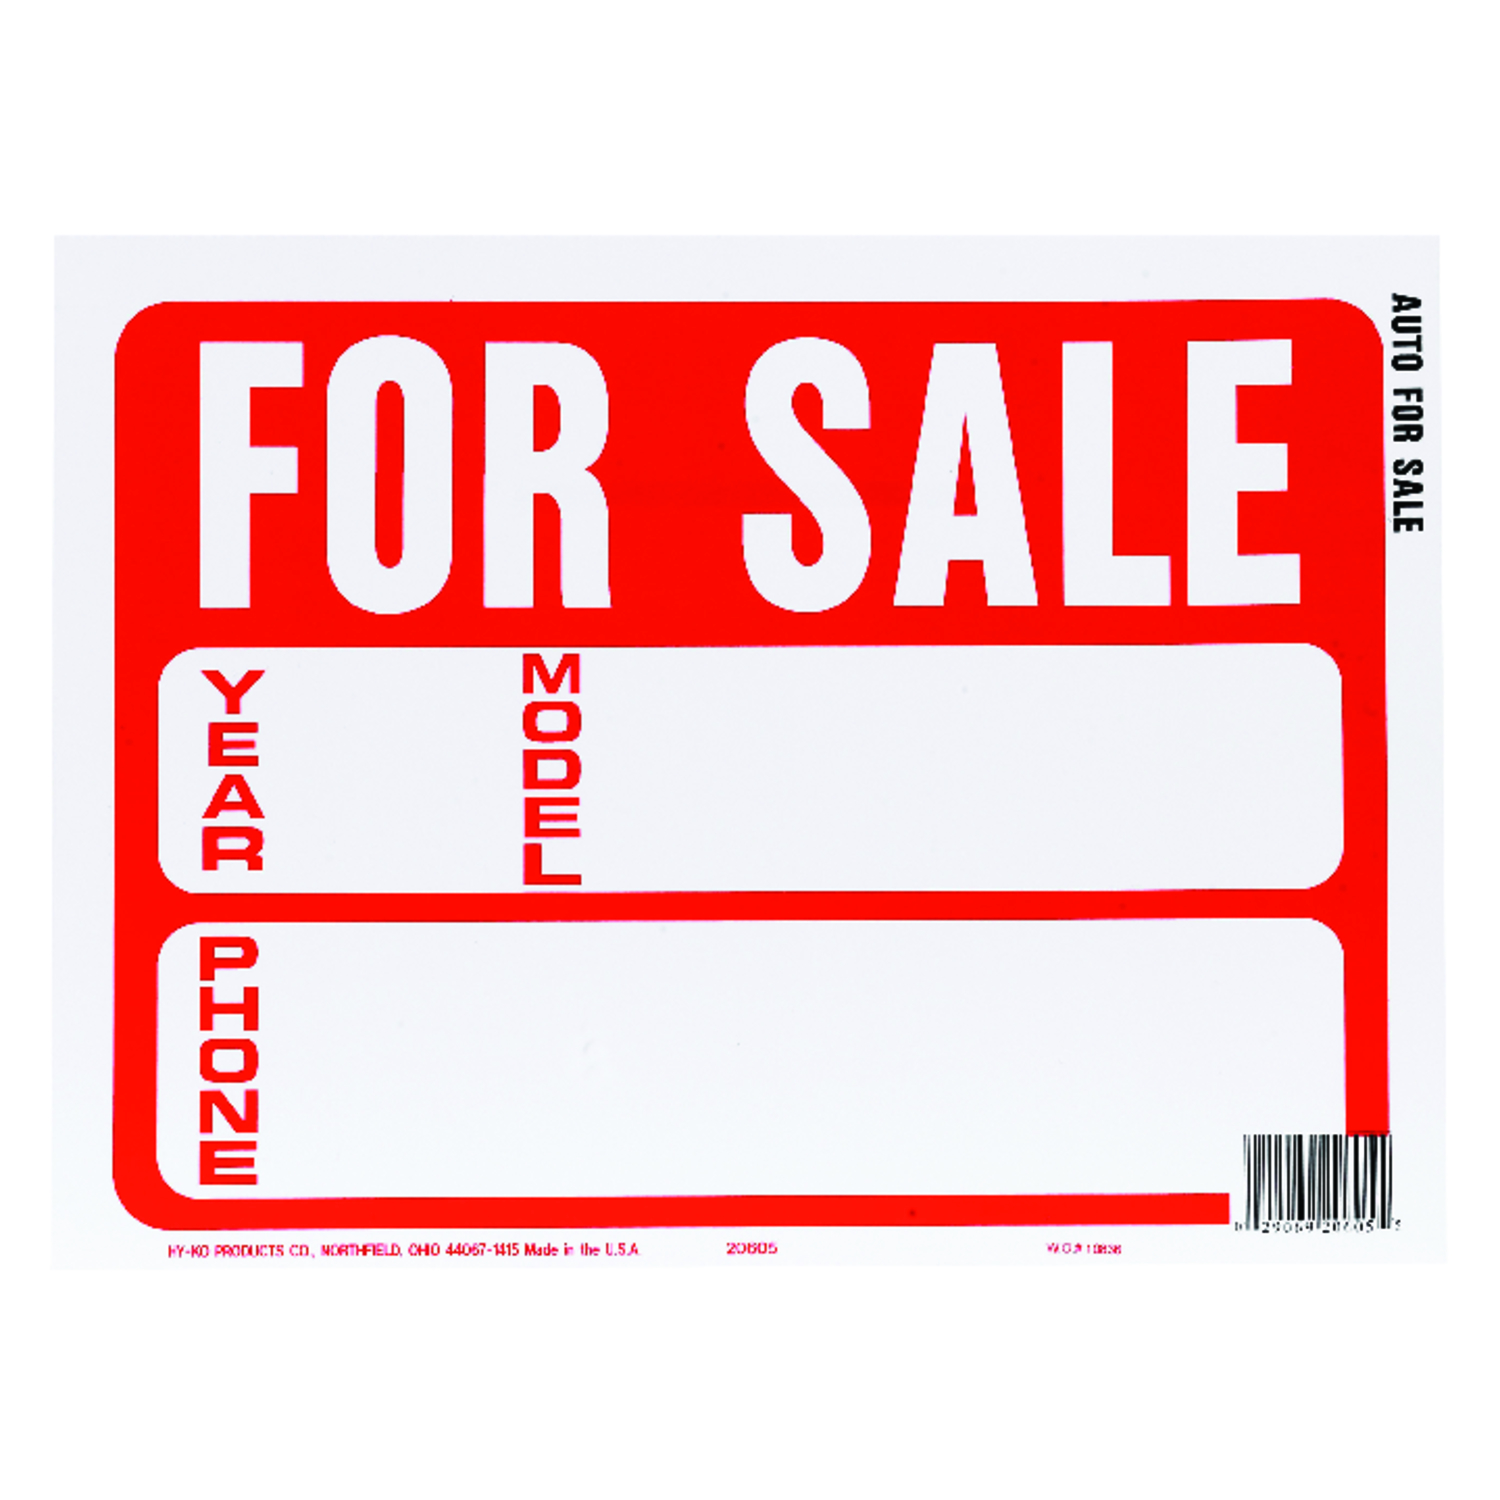 Hy-Ko  English  12 in. W x 9 in. H For Sale (Auto)  Plastic  Sign